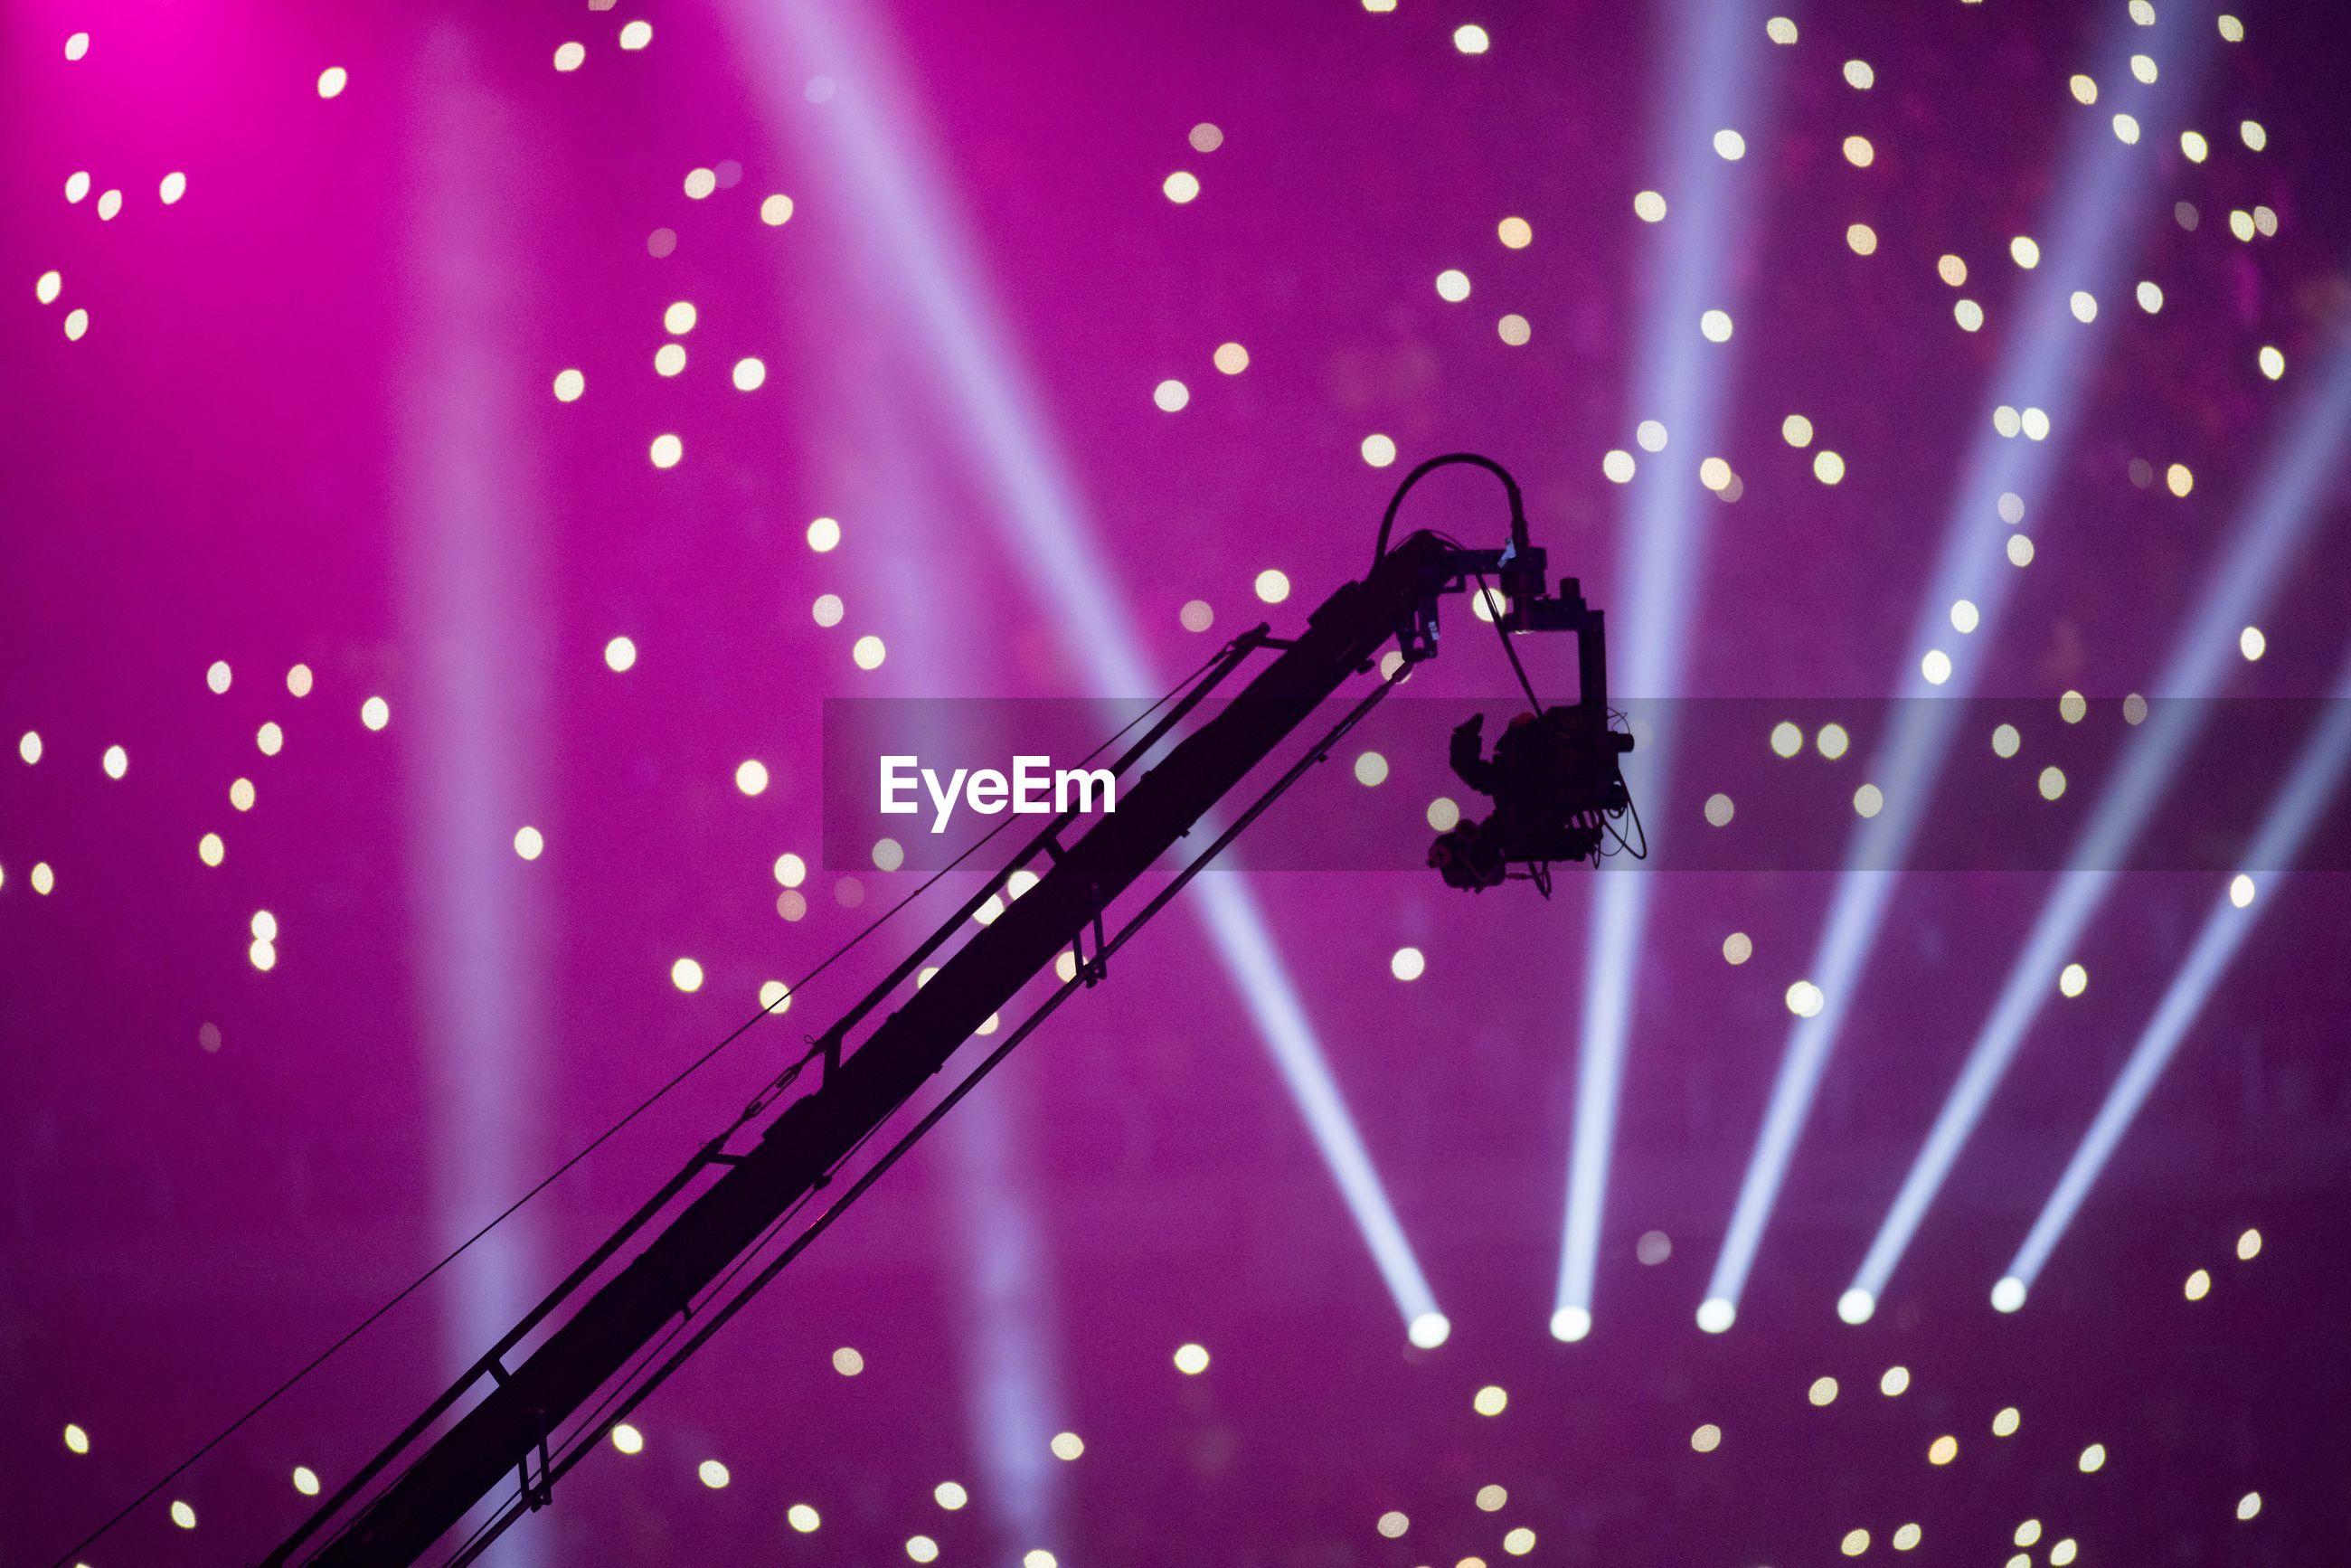 Low angle view of silhouette camera during concert